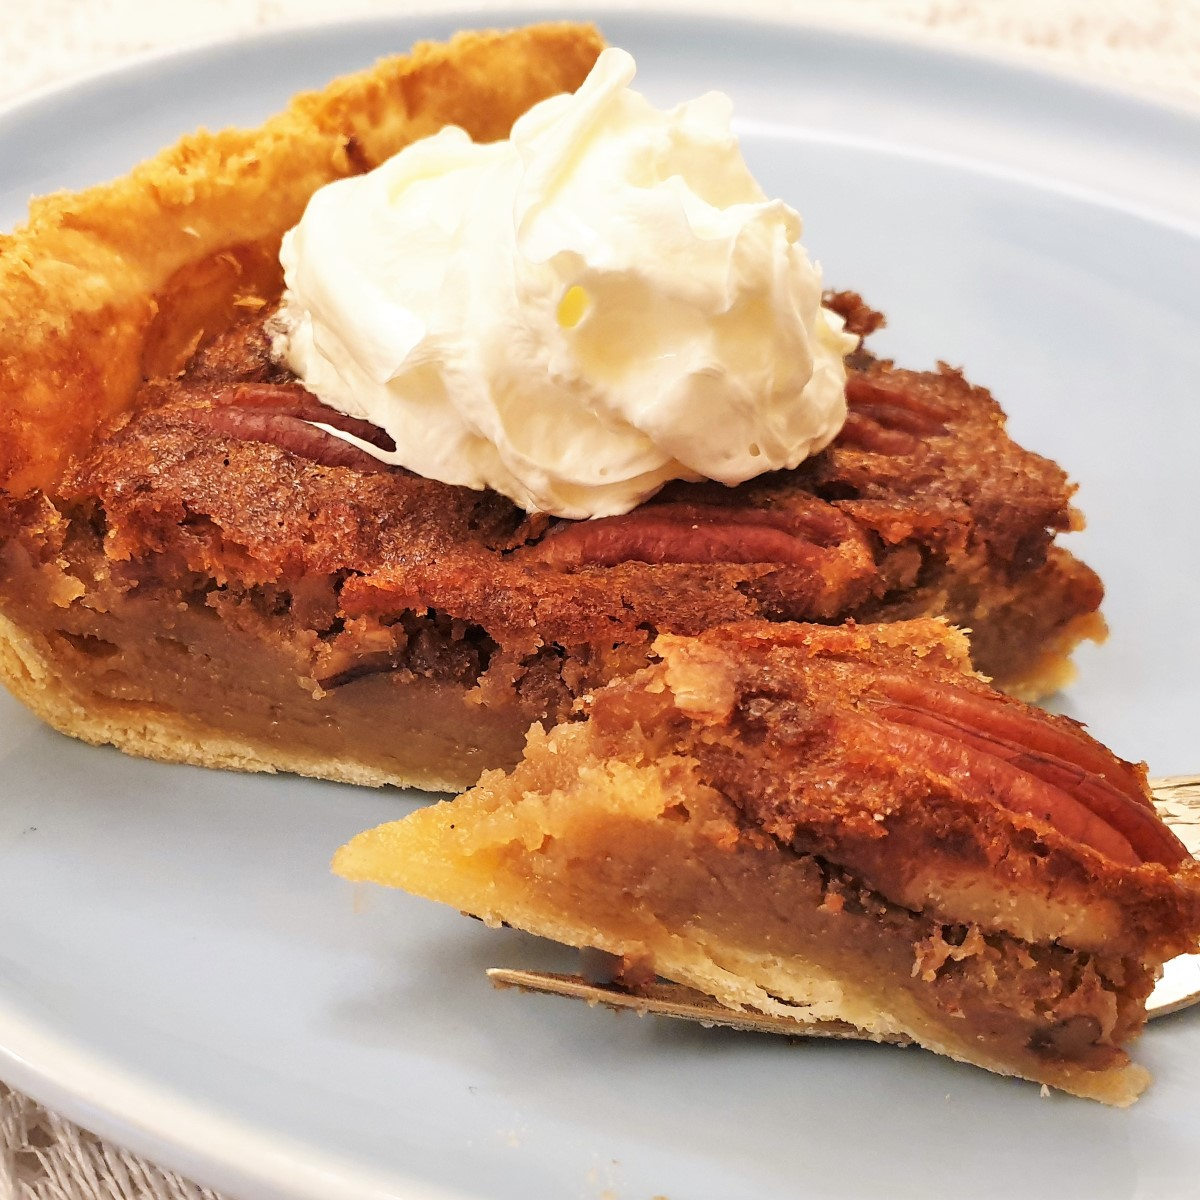 A slice of pecan nut pie on a plate.